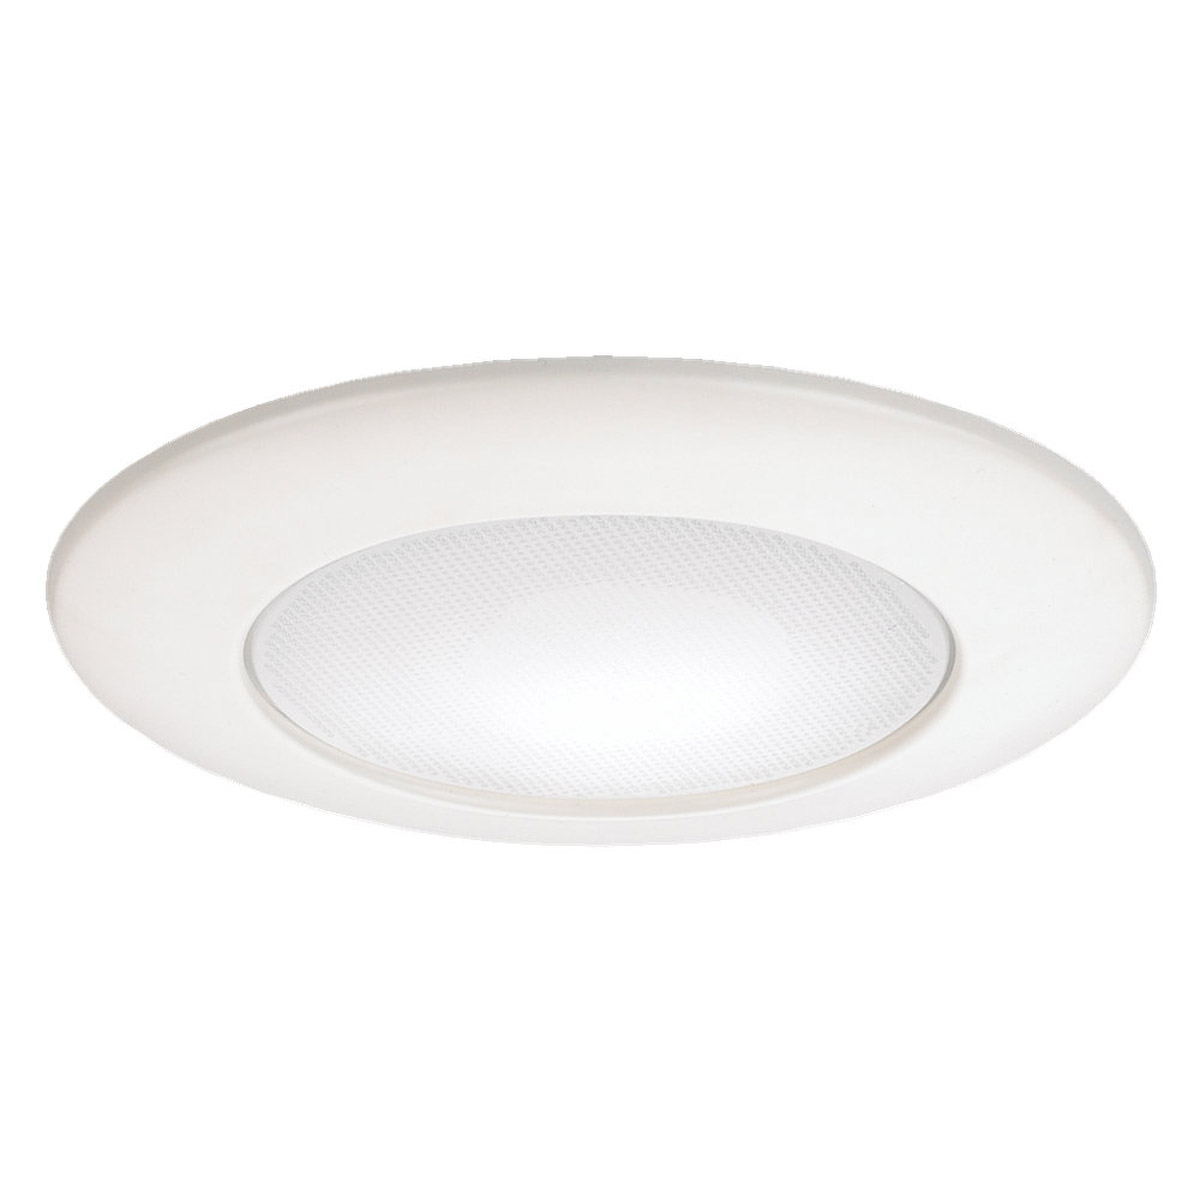 Sea Gull Lighting Signature Recessed Trim Only in White 11235AT-15 photo